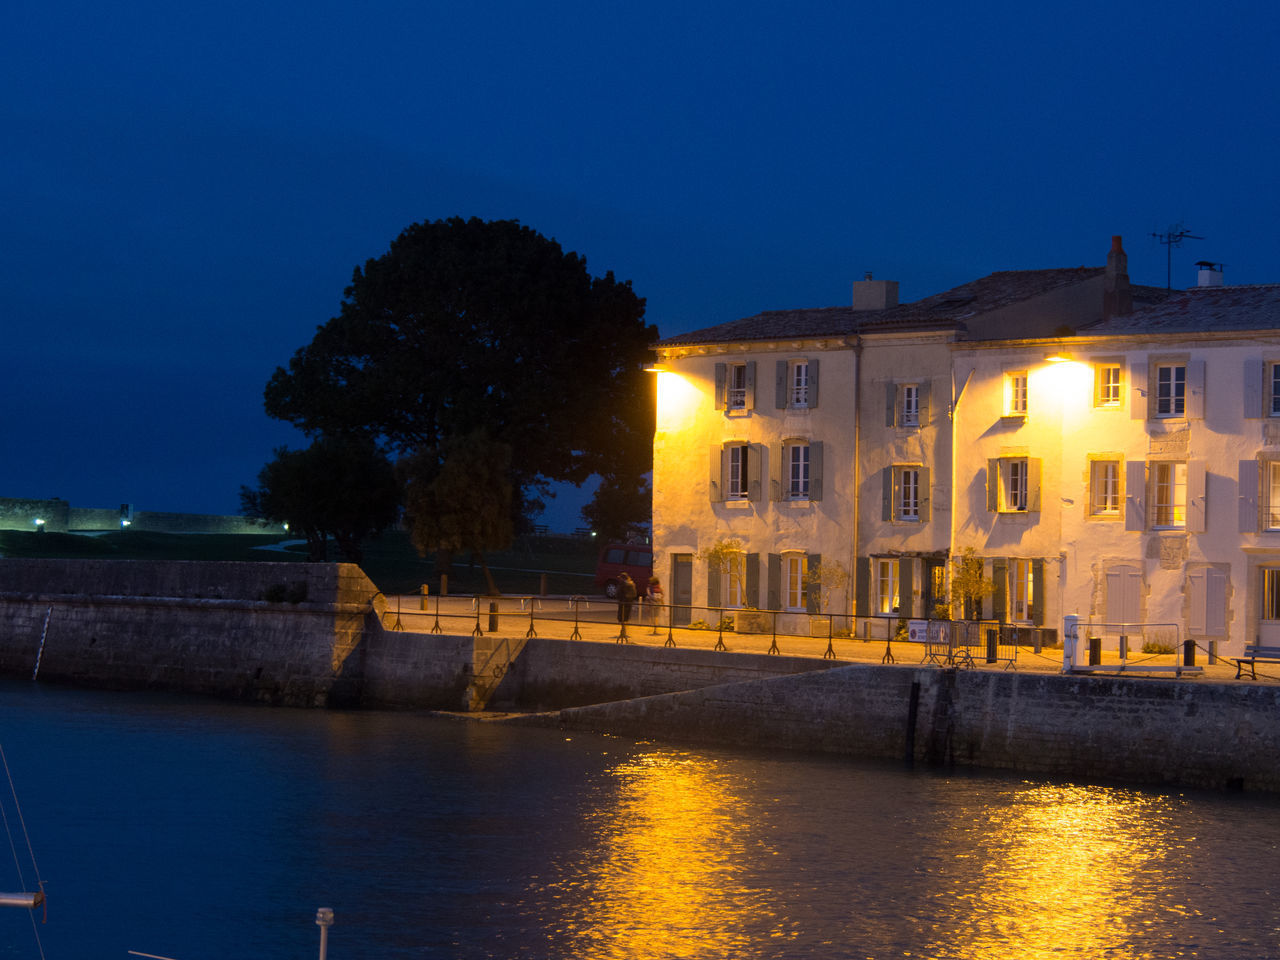 ILLUMINATED BUILDING BY RIVER AGAINST SKY AT NIGHT